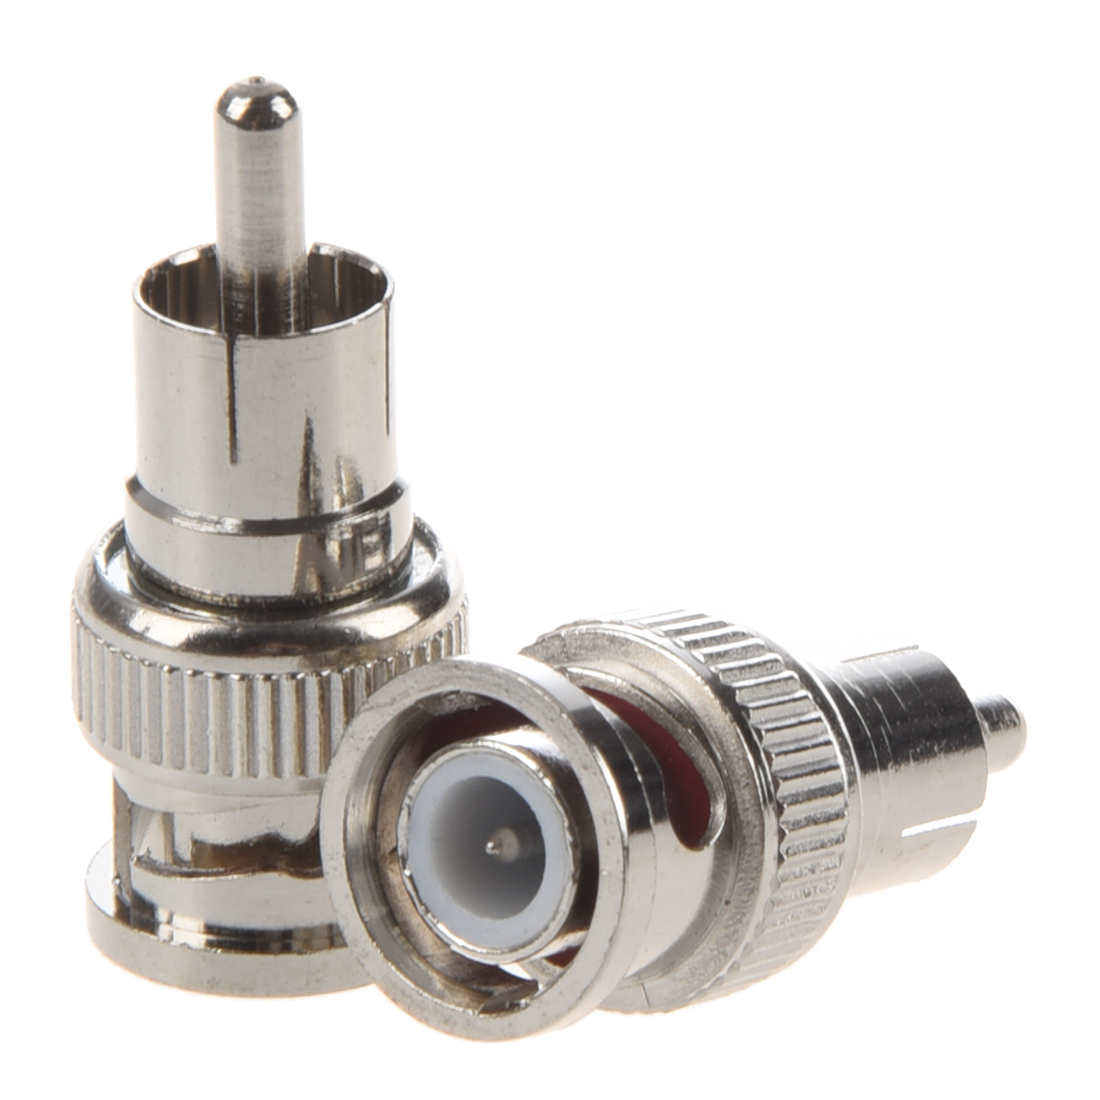 DSHA New Hot 2 Pcs BNC Male to RCA Male RF Coaxial Connector Adapter for CCTV bnc male connector tee t shaped head 2 female adapter silver 2 pcs